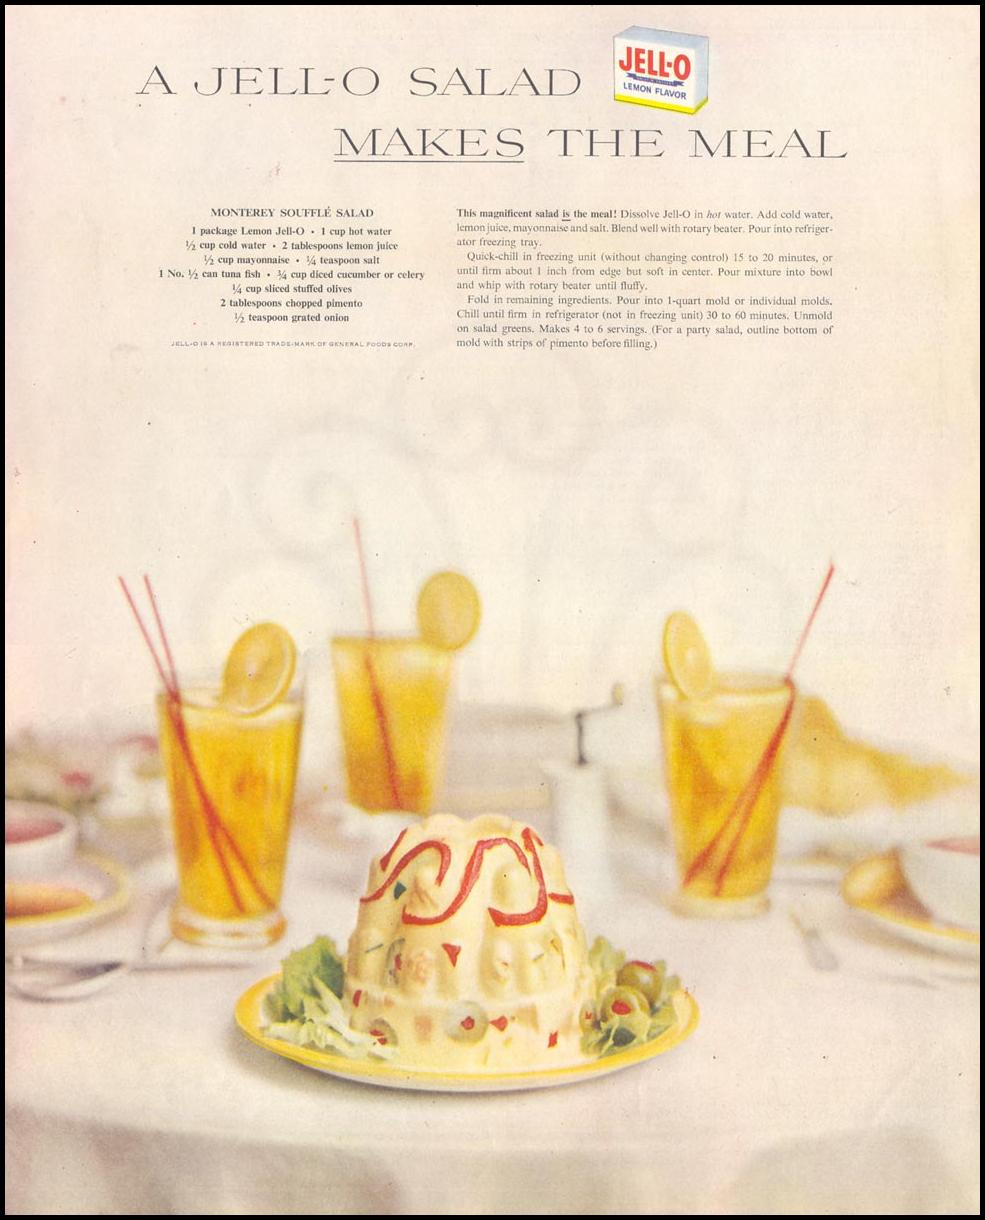 JELL-O